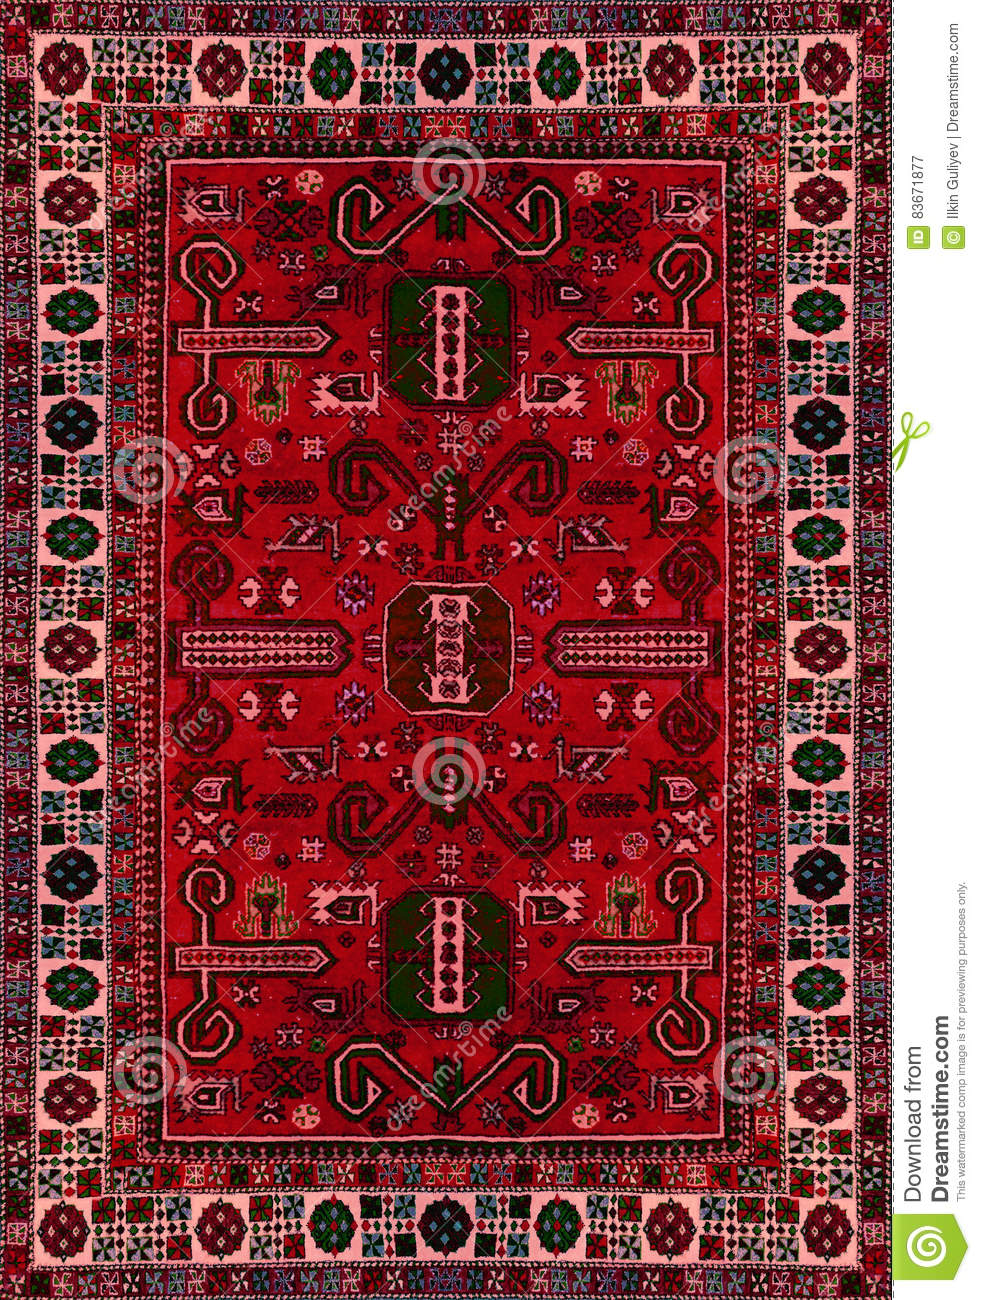 Oriental Ornate Traditional Carpet Texture Royalty Free